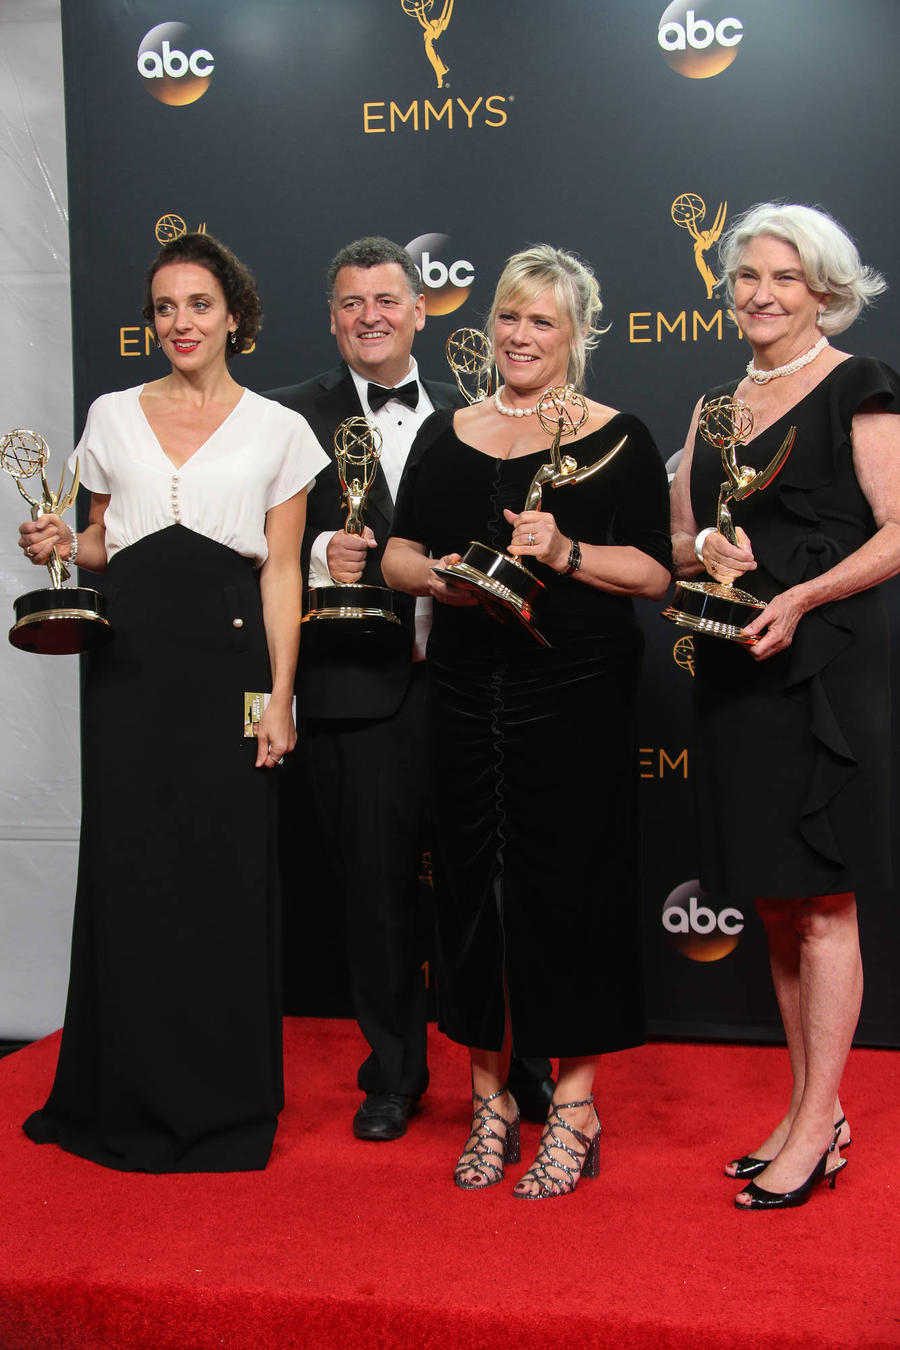 Amanda Abbington Was 'Robbed' At The Emmy Awards